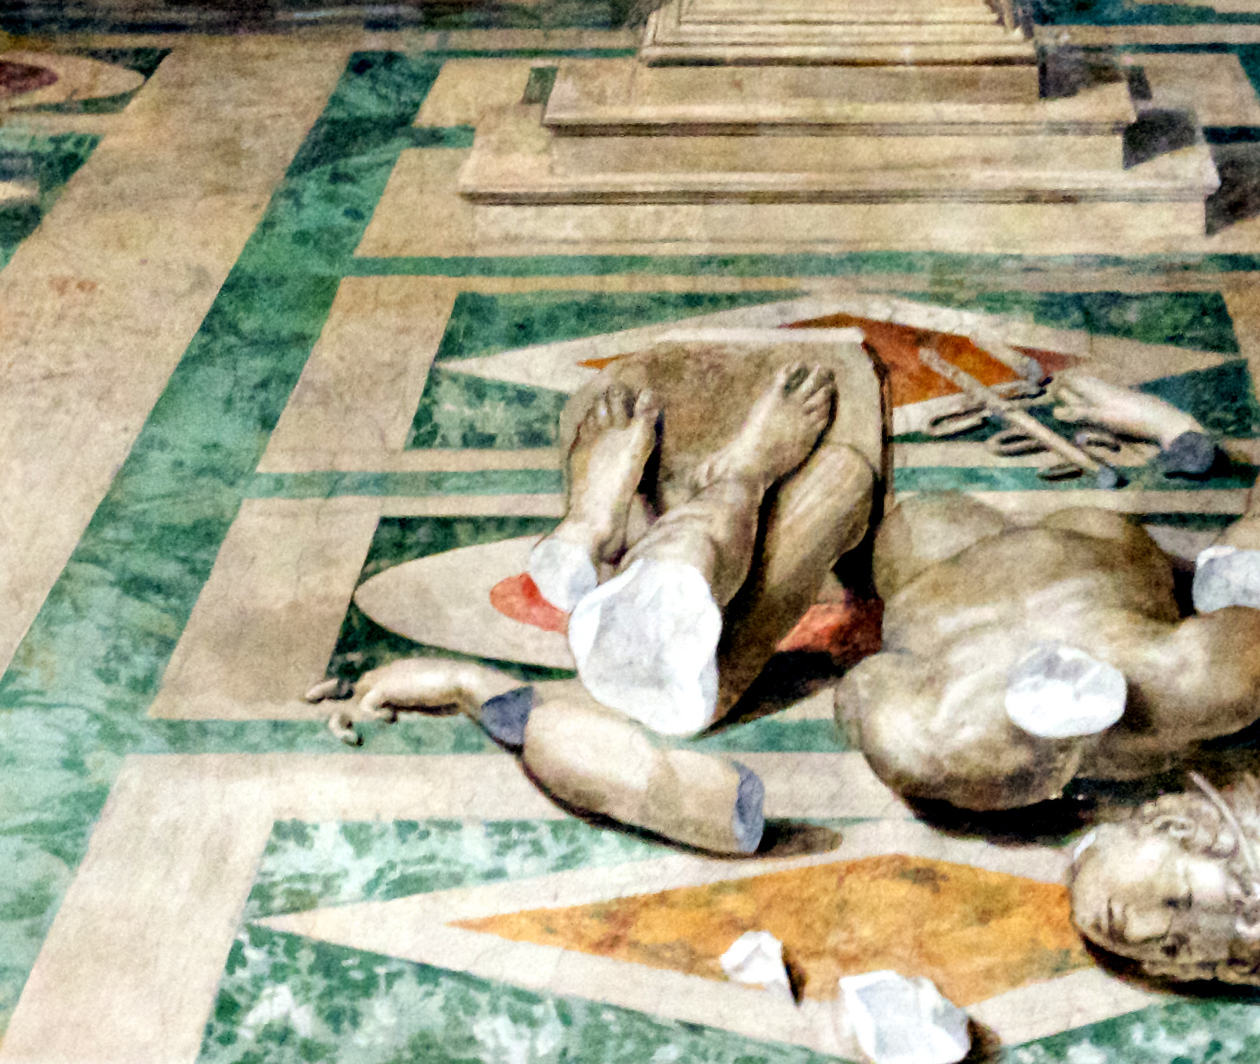 Antiquities Trafficking and Art Crime